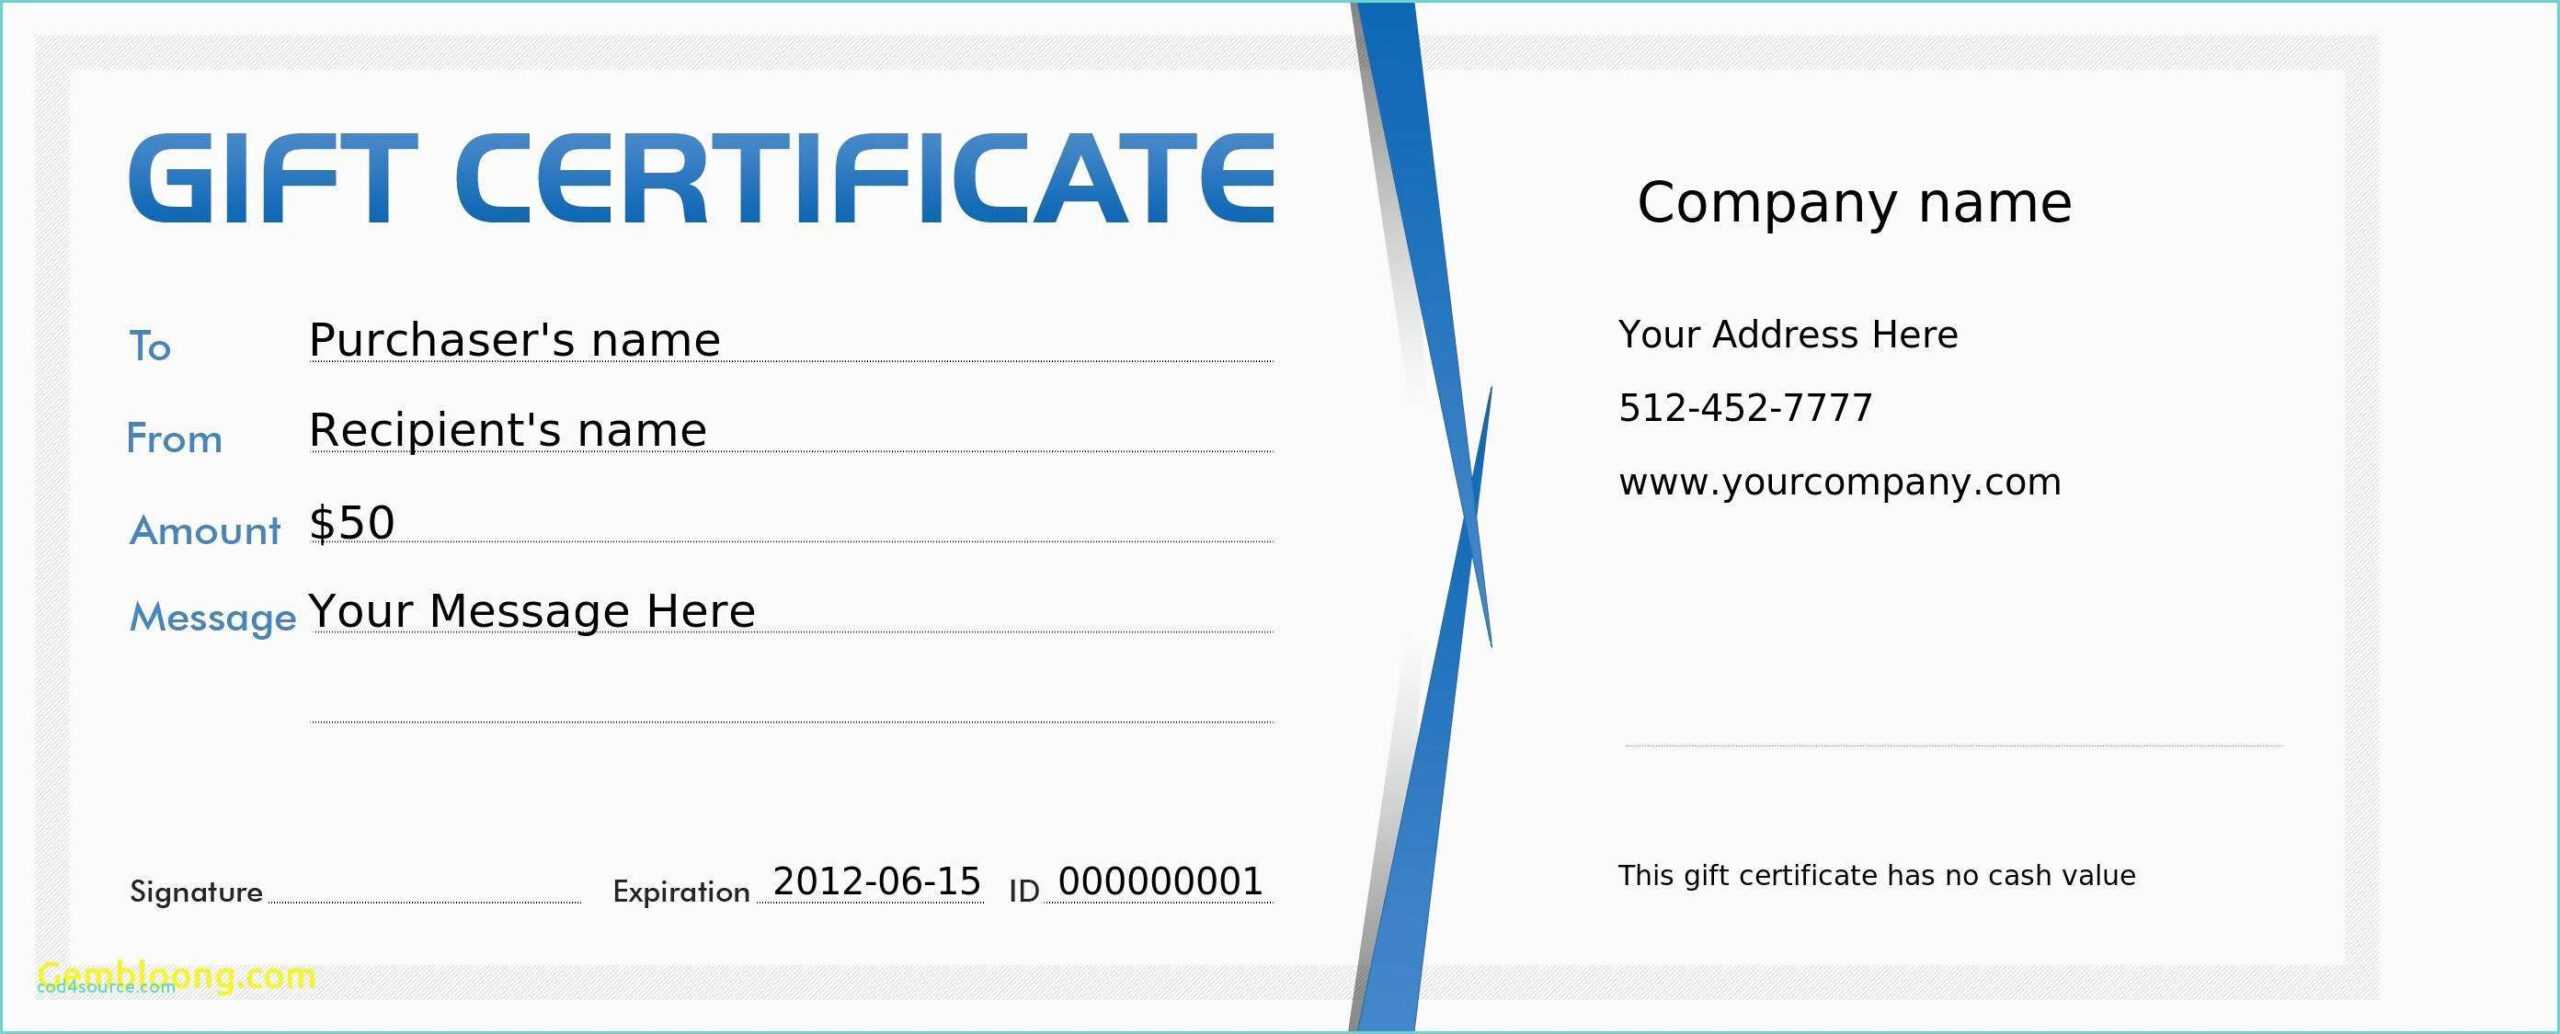 Gift Certificate Template Microsoft Publisher Within Publisher Gift Certificate Template